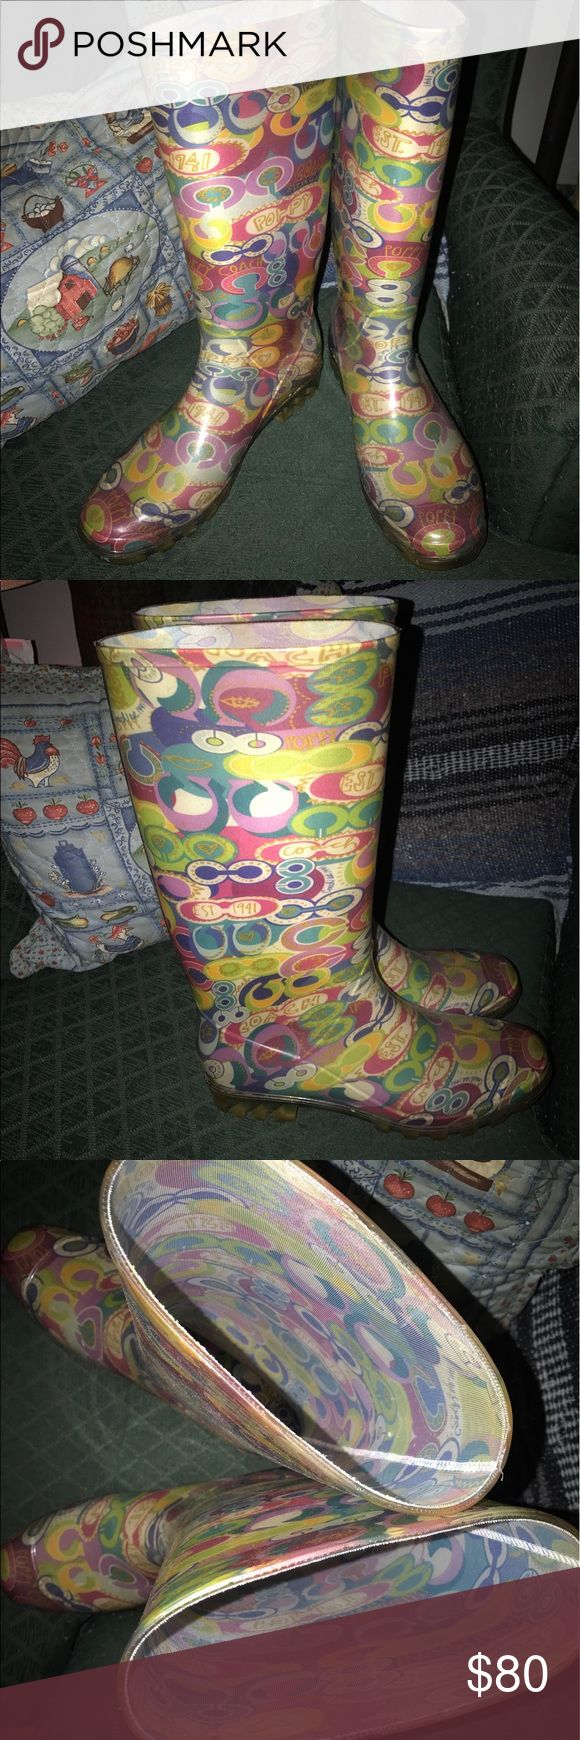 """Authentic Coach Poppy """"POP C"""" water/rain boots sz9 Awesome condition! These Authentic Coach Poppy """"POP C"""" tall water/rain boots, Ladies size 9 are ready for a new owner! Matching Bag & clutch/case are sold separately! Bundle to save! Coach Shoes Winter & Rain Boots"""